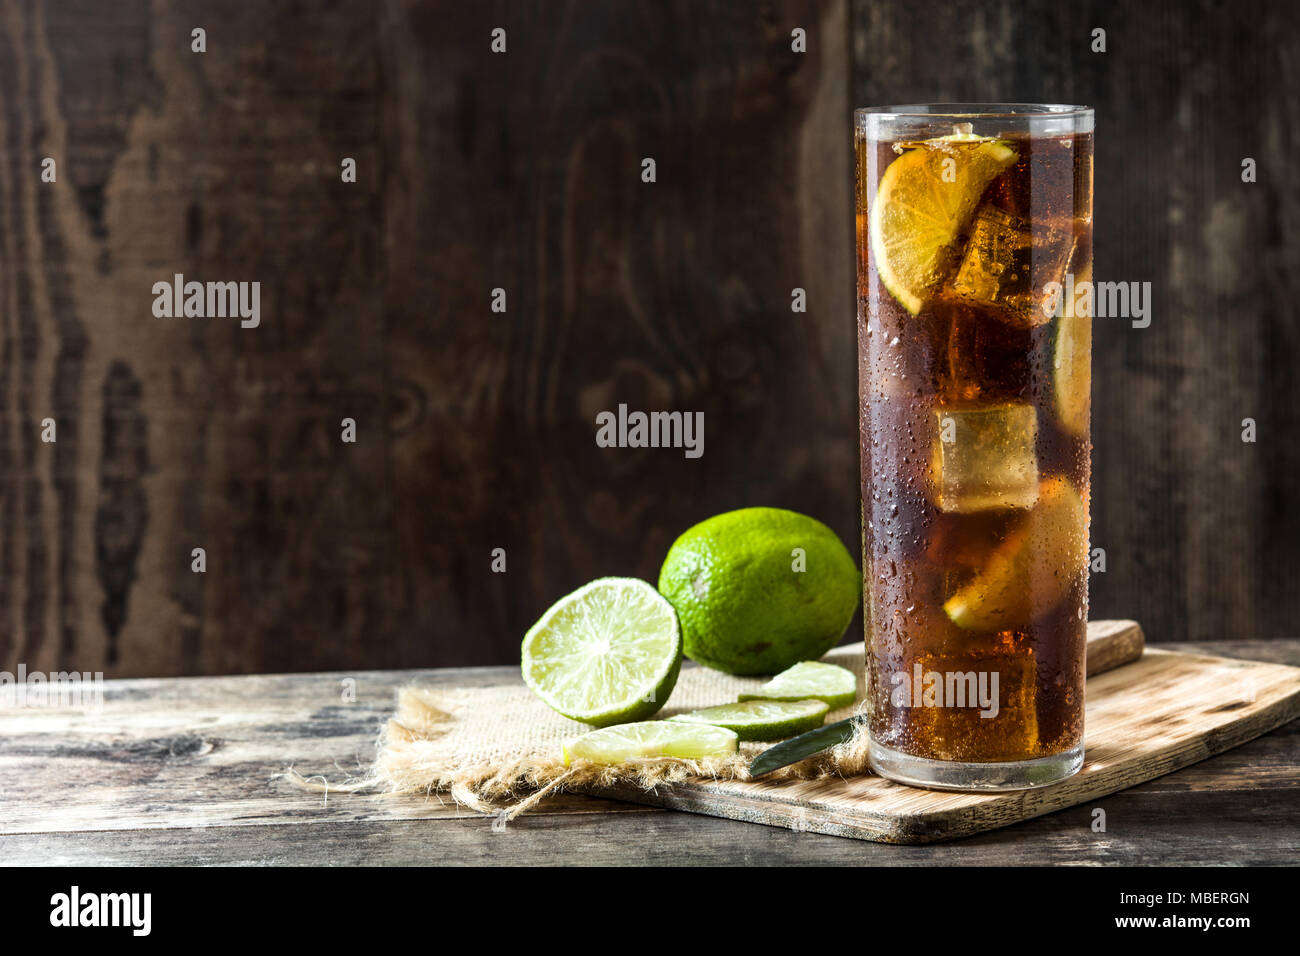 Cuba libre. Cocktail with rum, lime and ice on wooden table. - Stock Image